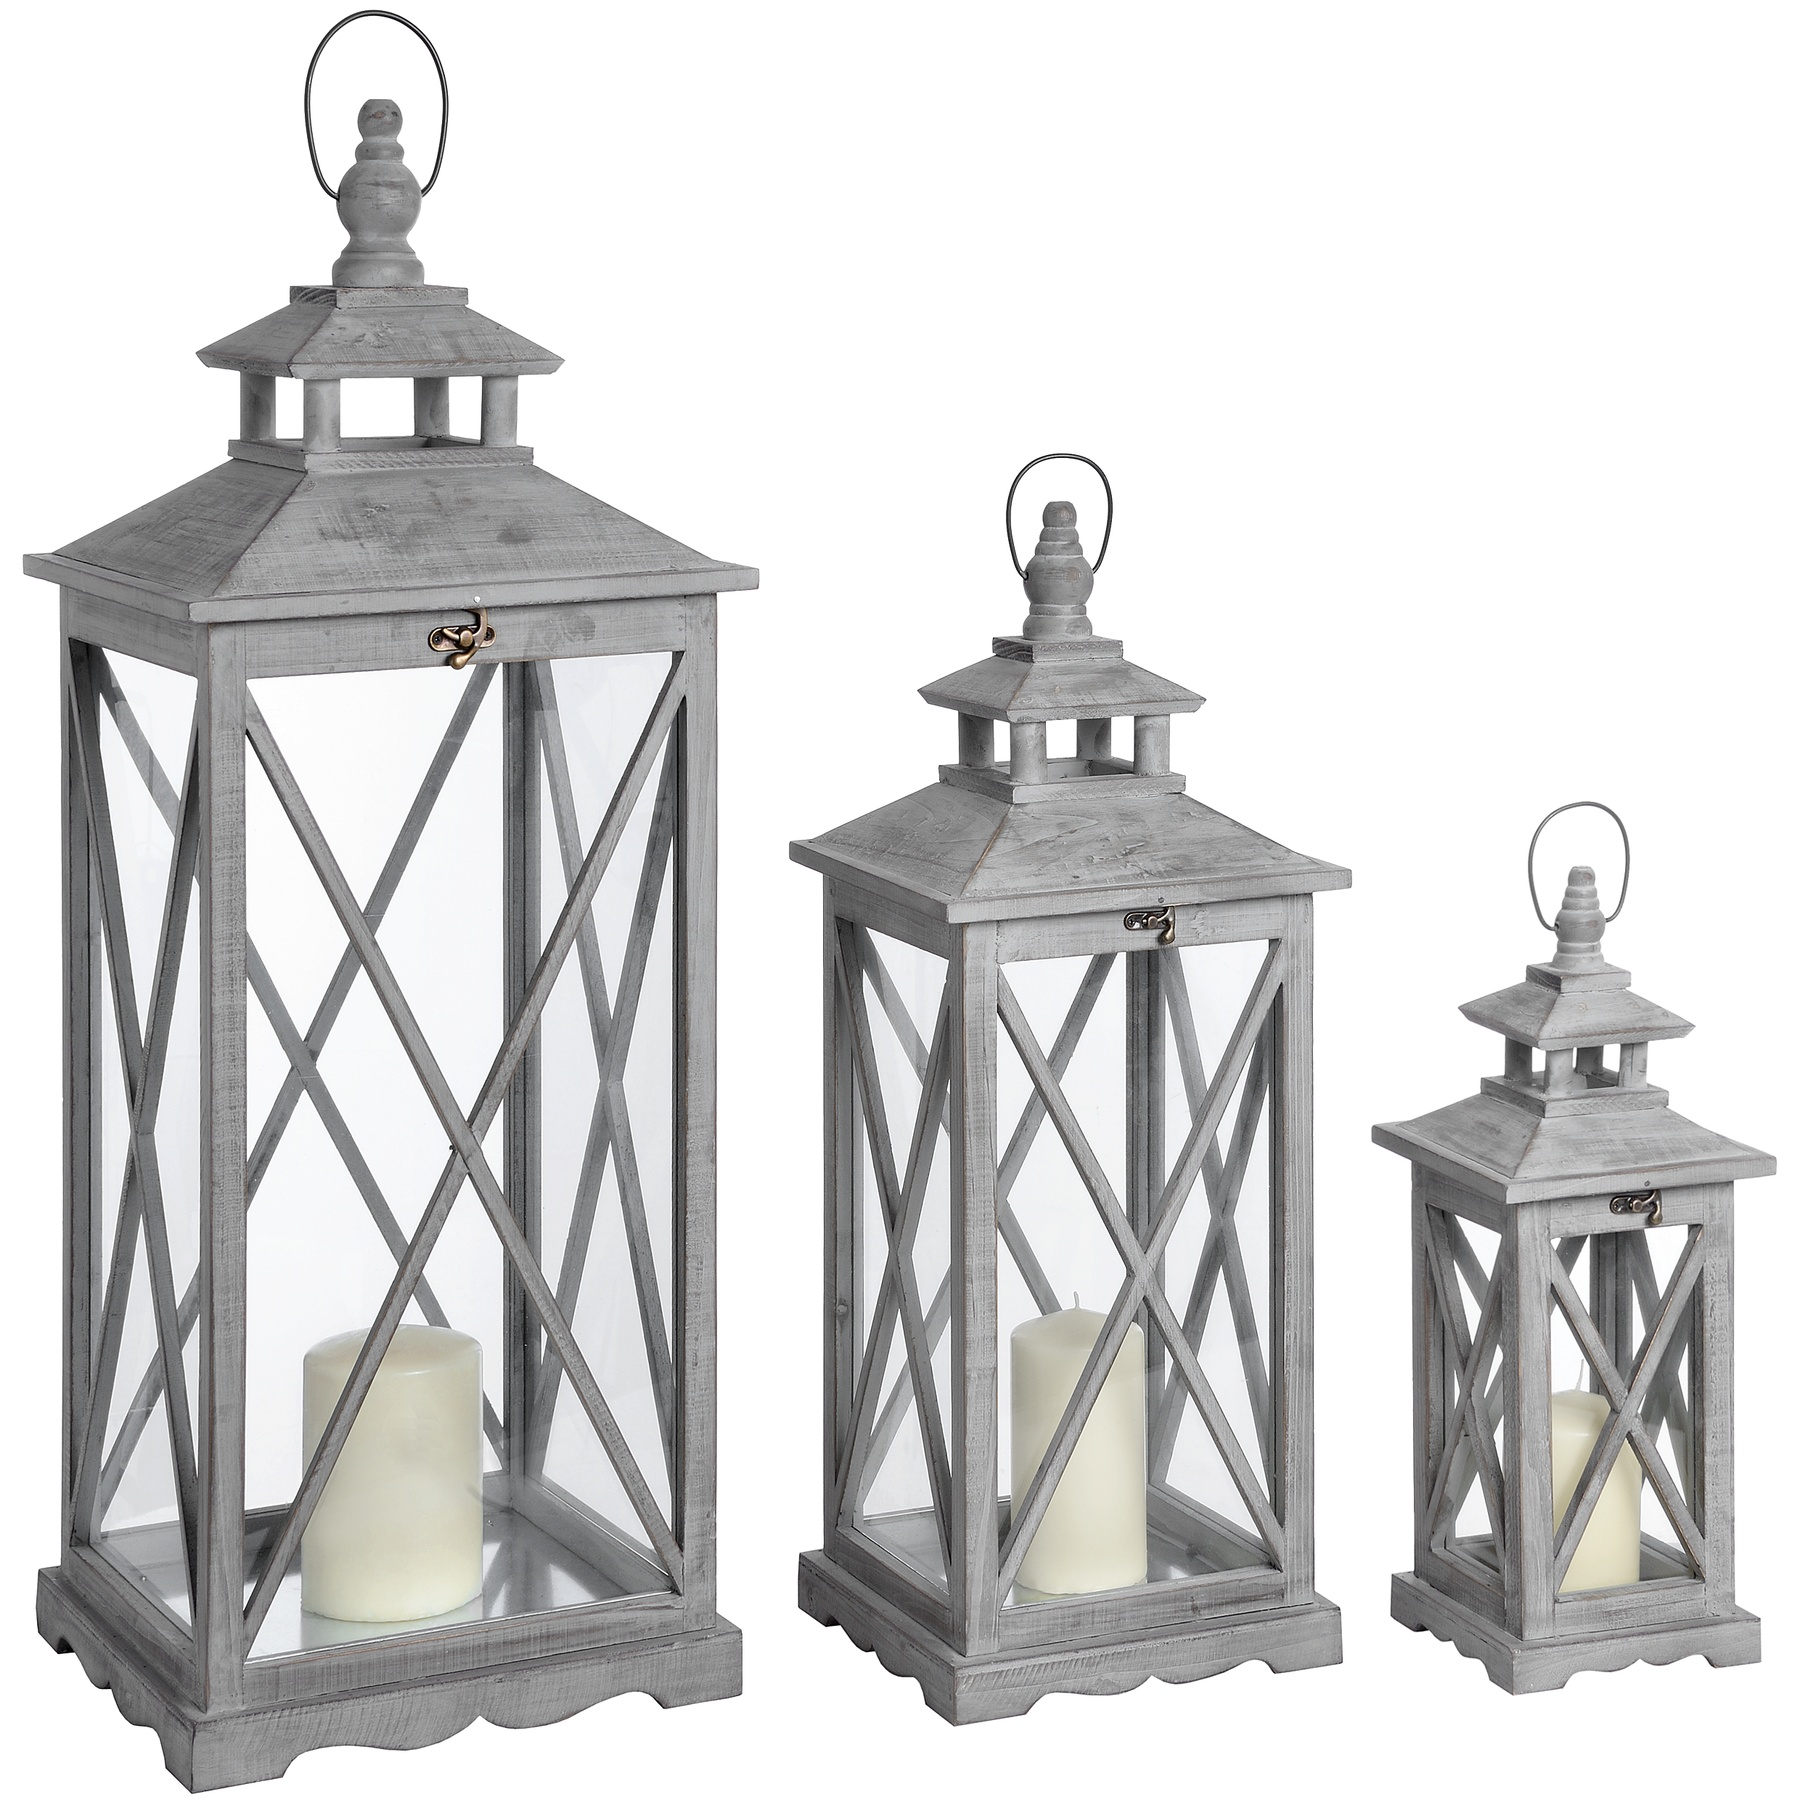 Set Of Three Wooden Lanterns With Traditional Cross Section by Hill Interiors